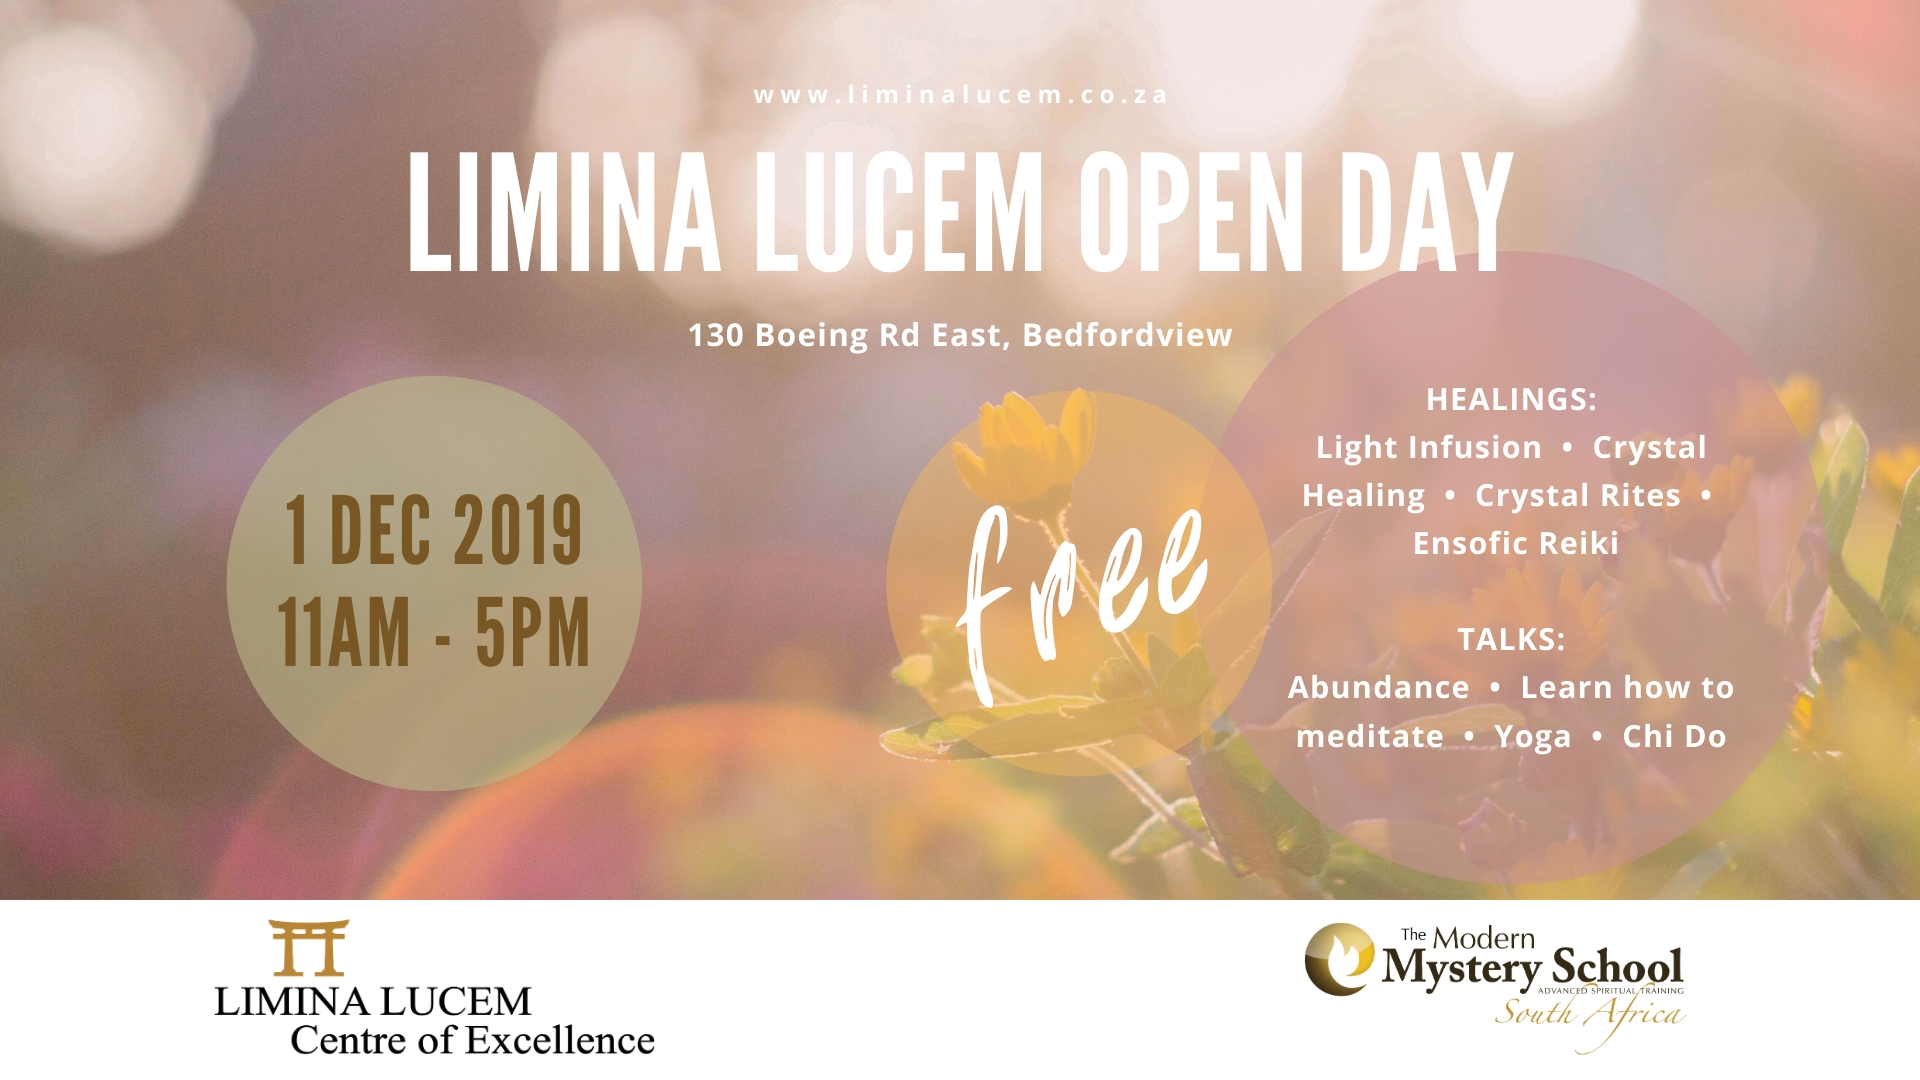 Limina Lucem Open Day @ Limina Lucem Centre of Excellence